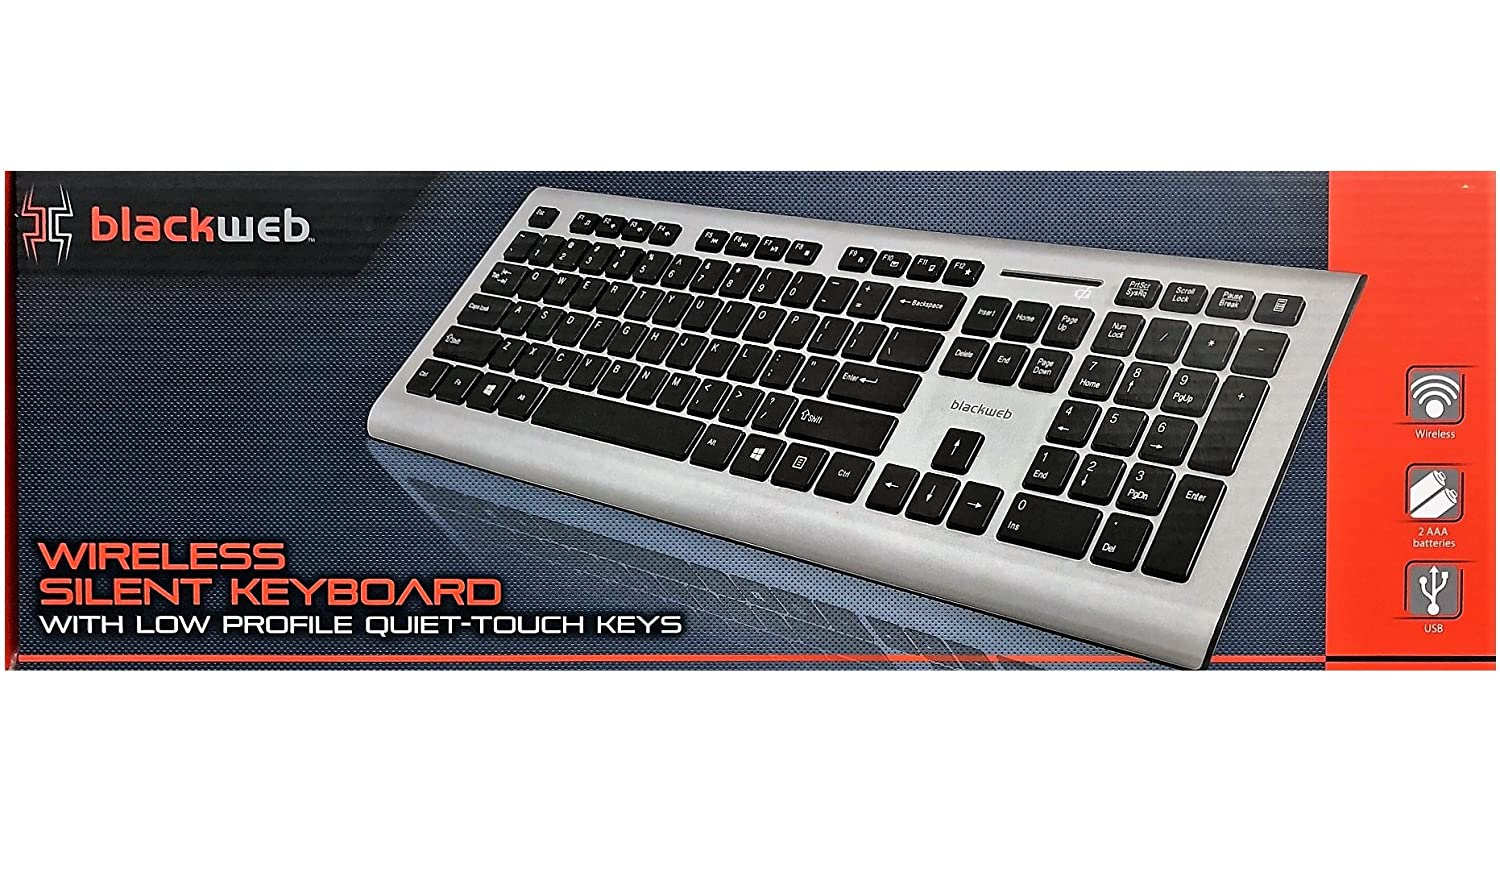 Blackweb Wireless Silent Keyboard with Low Profile Quiet-Touch Keys, Silver